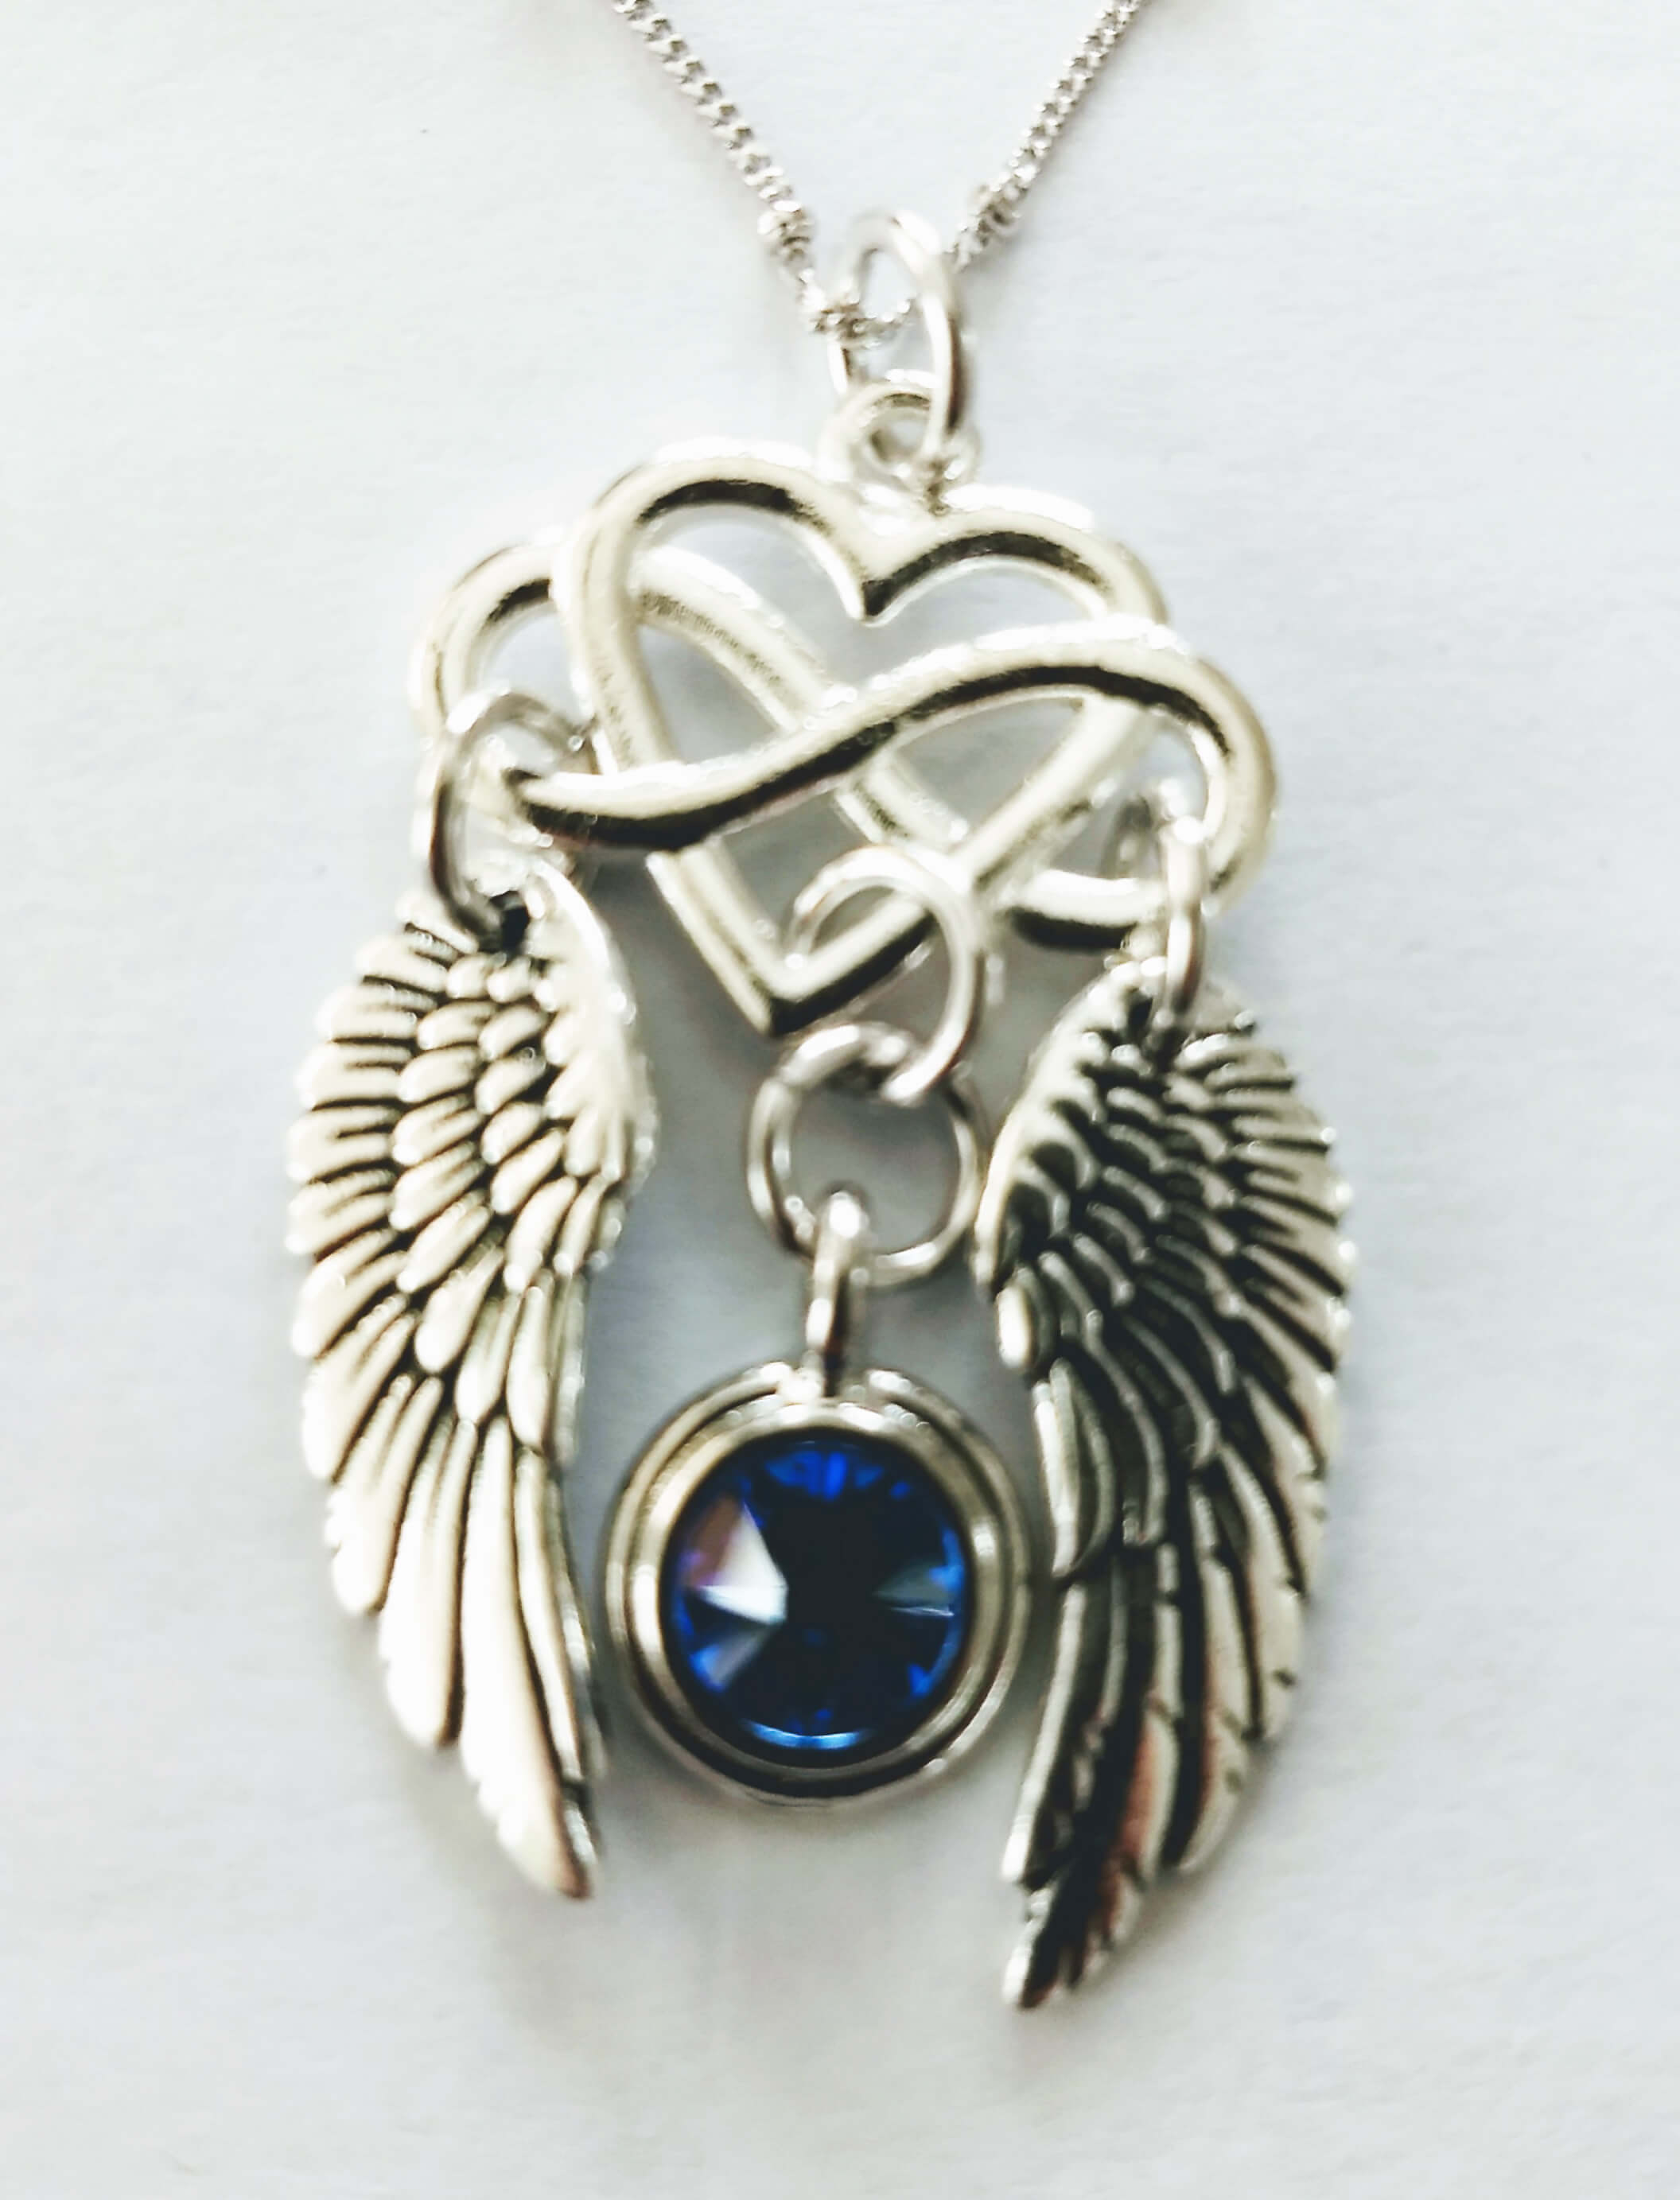 https://lorirae.com/wp-content/uploads/2019/04/Infinity-heart-wings-necklace4.jpg